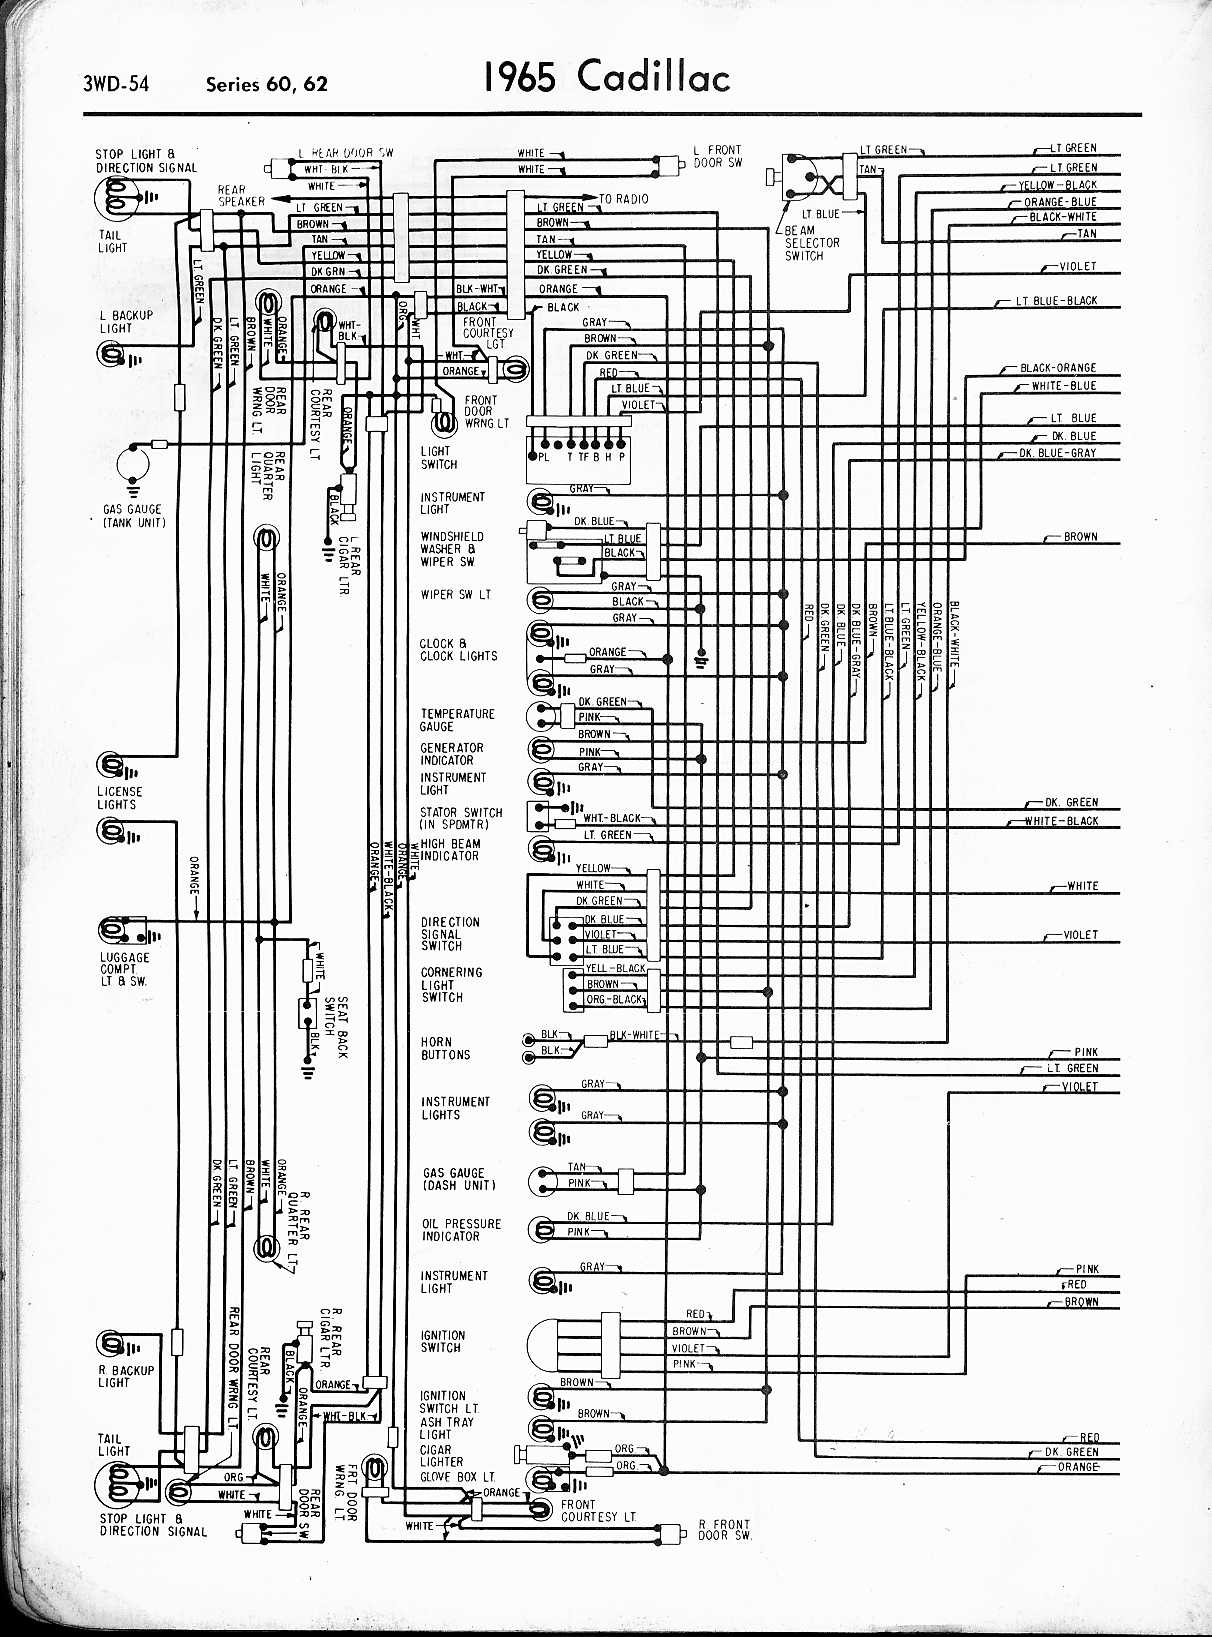 1985 Cadillac Fleetwood Brougham Fuse Box Diagram Wiring Library 1990 1969 Schematic U2022 1992